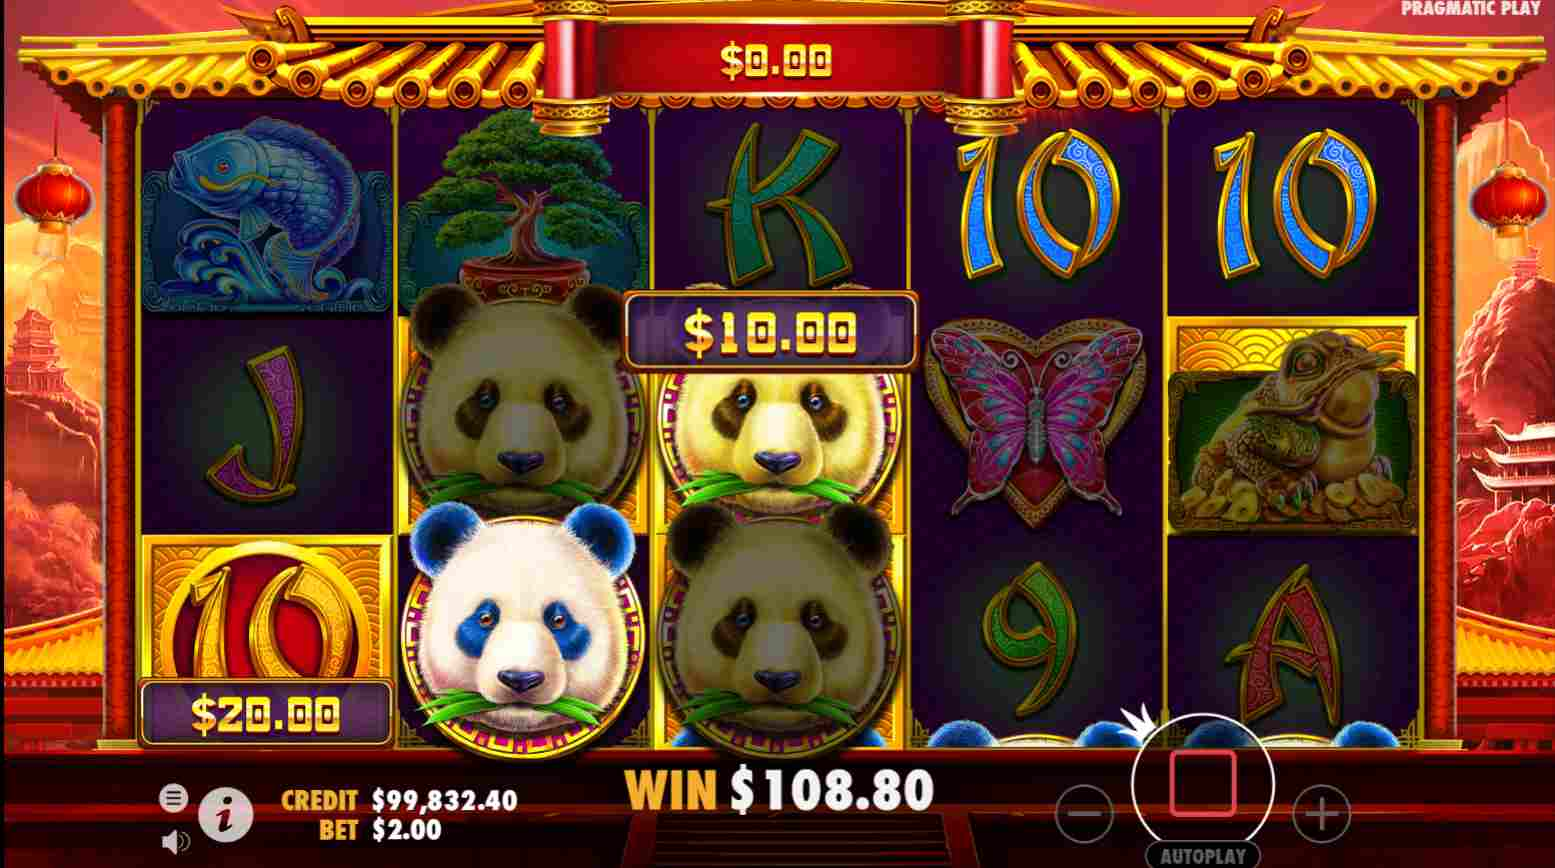 Panda's Fortune 2 Free Spins